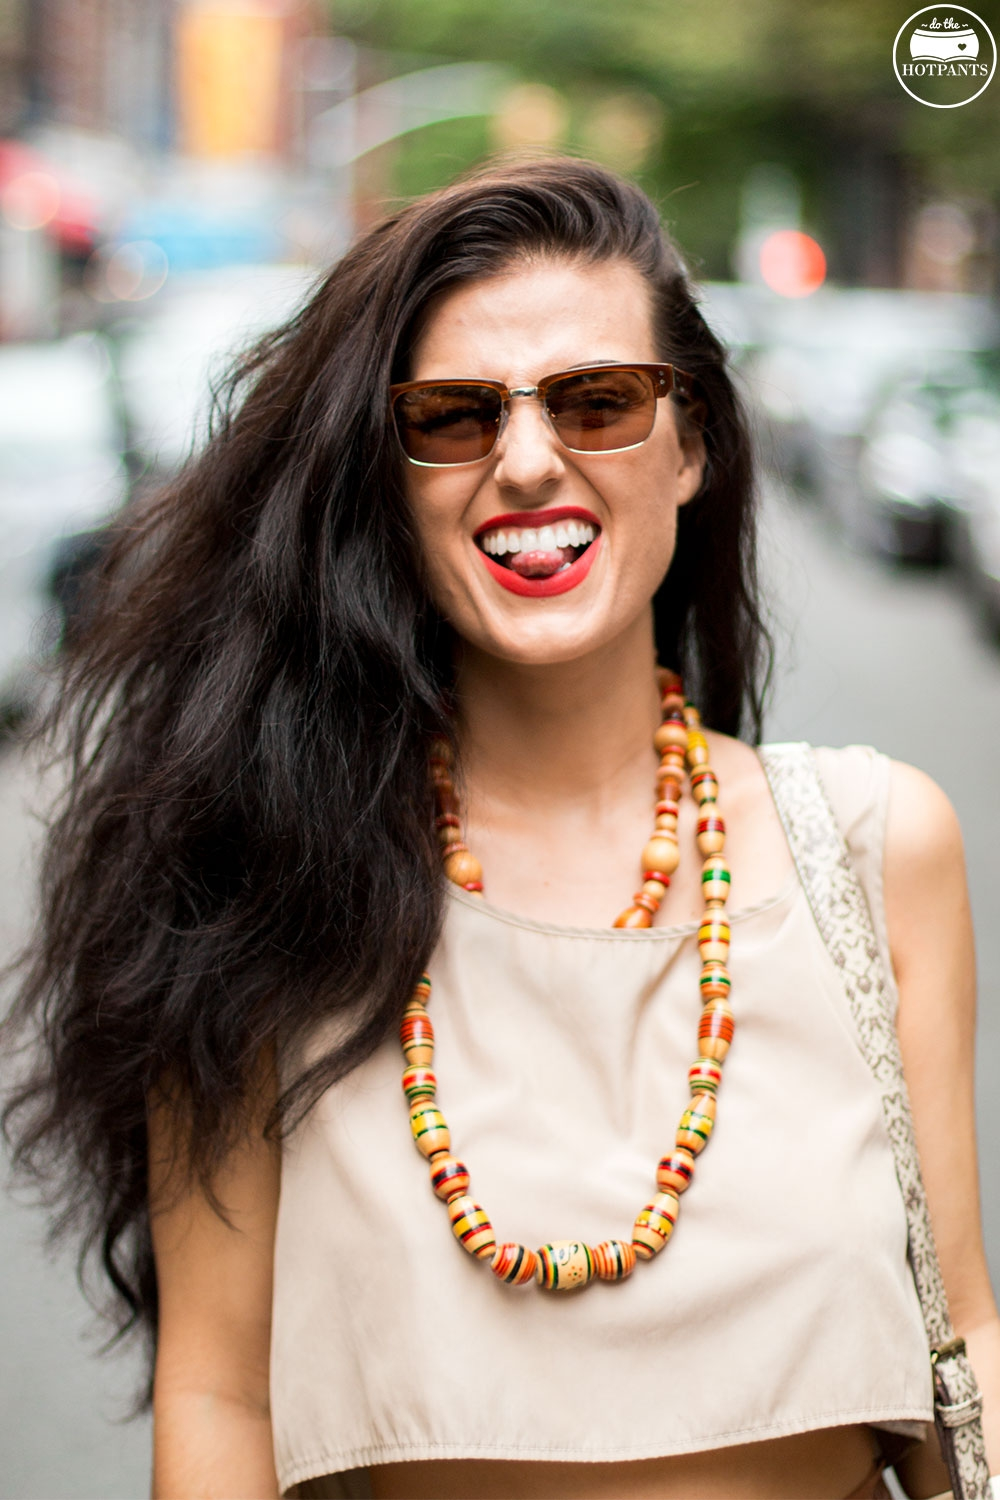 Do The Hotpants Dana Suchow Dharma Sunglasses Summer New York City Outfit Streetstyle Neutral Nude Fashion IMG_9743